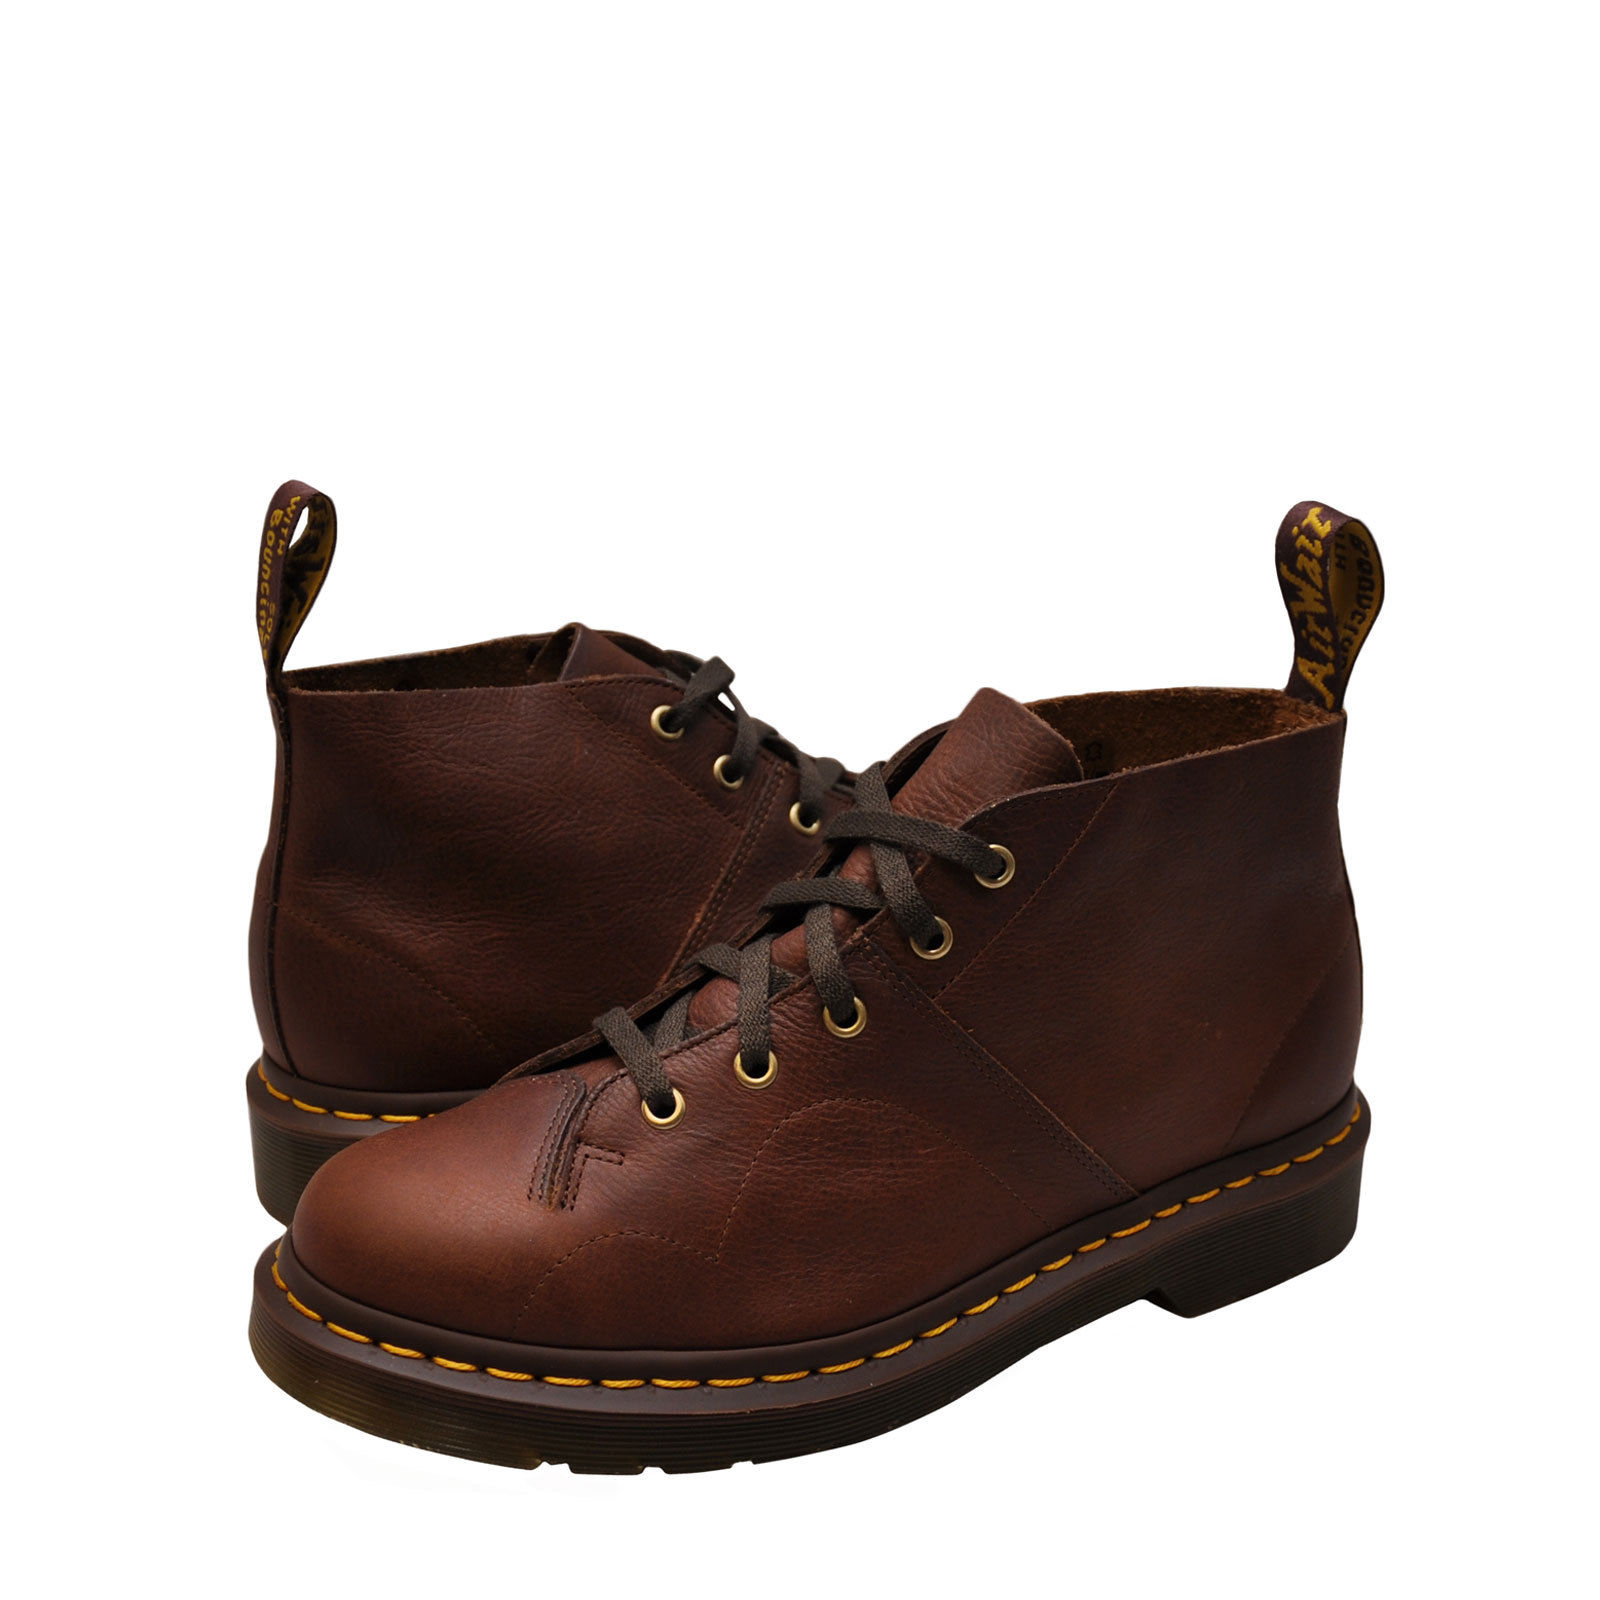 Dr. Martens Church Men's Shoes Leather Monkey Boots 22230220 Tan by Dr. Martens